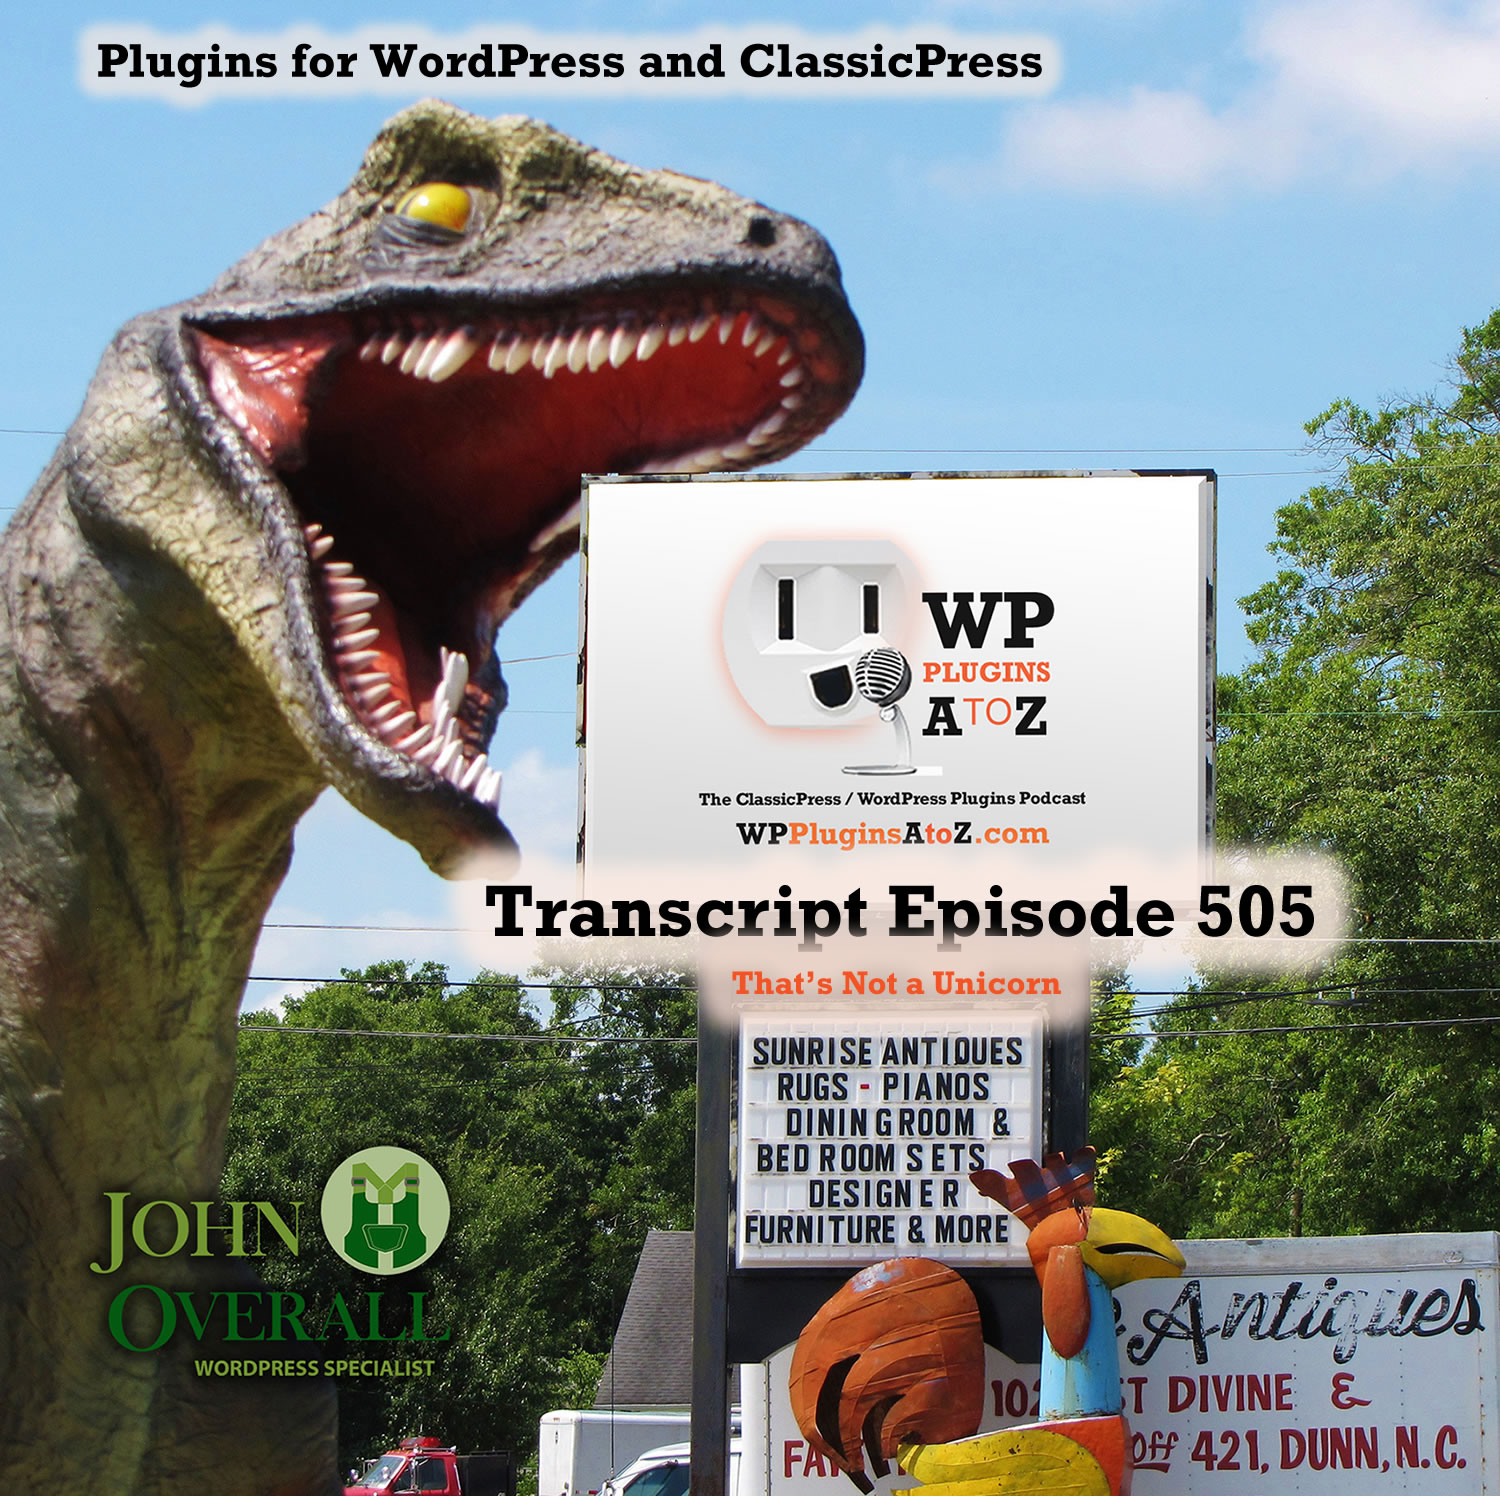 That's Not a Unicorn It's Episode 505 - We have plugins for Pulling off April Fools day; including Unicorns, Fresh Eggs, Seeing in Black & White, Making it all Disappear....., and ClassicPress Options. It's all coming up on WordPress Plugins A-Z!